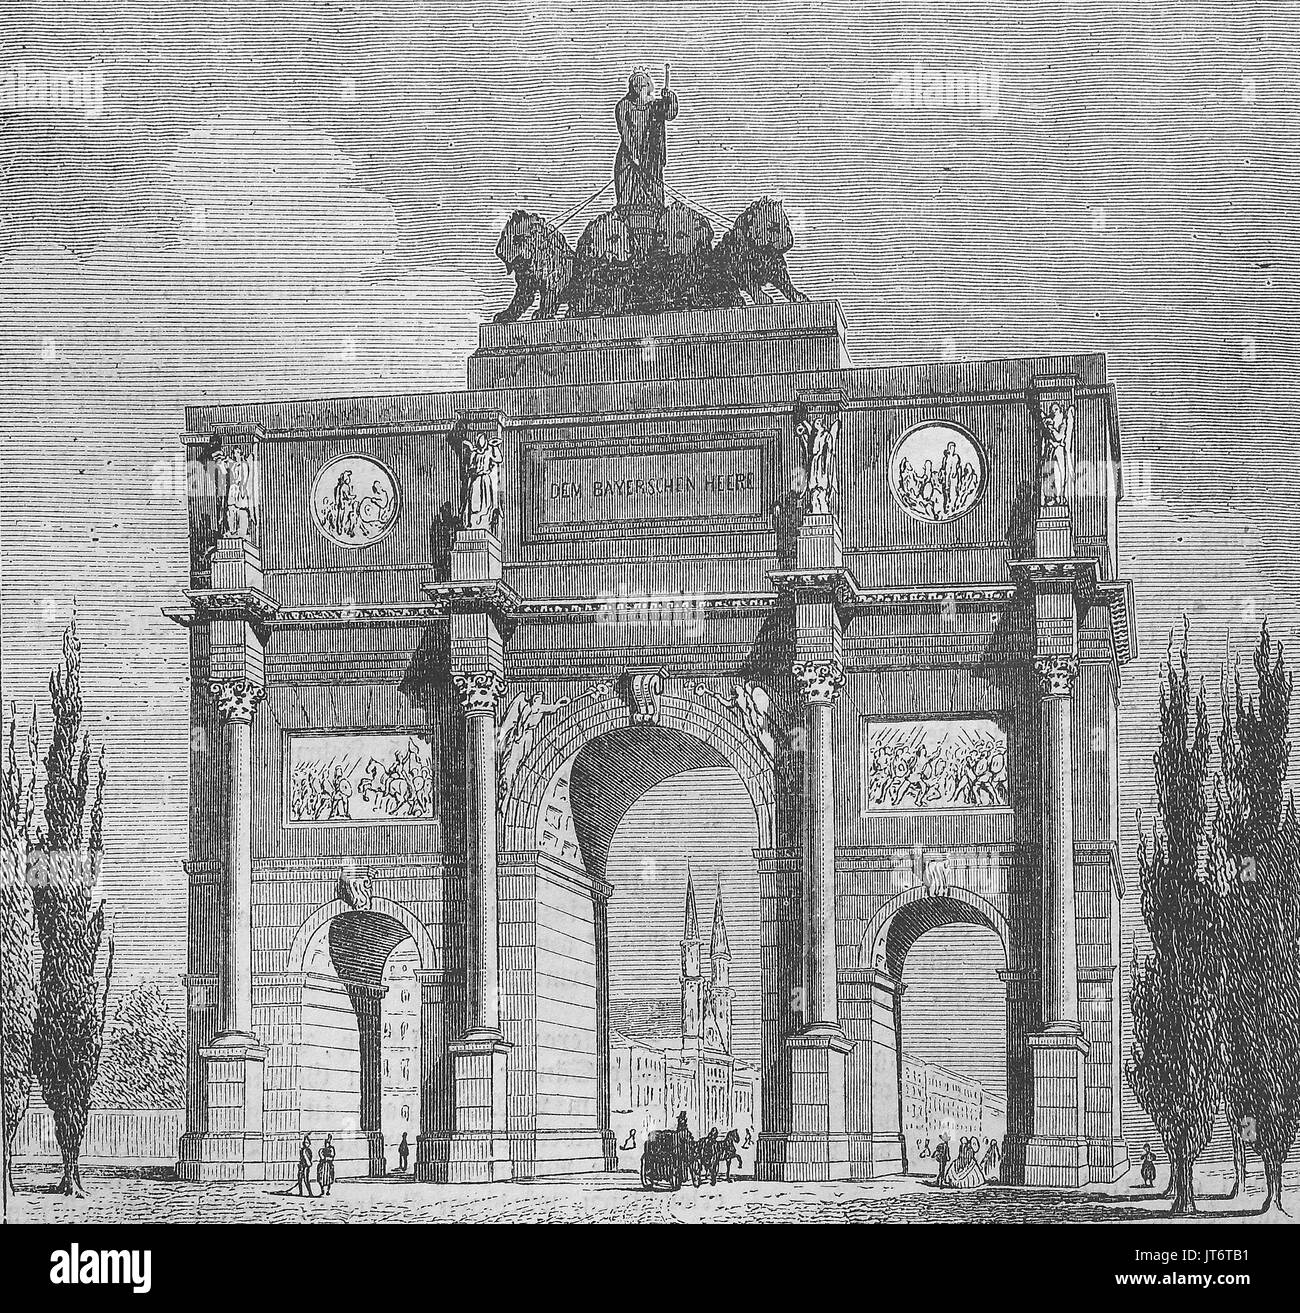 the gate Siegestor at Munich, Bavaria, Germany, Digital improved reproduction of an image published between 1880 - 1885 - Stock Image